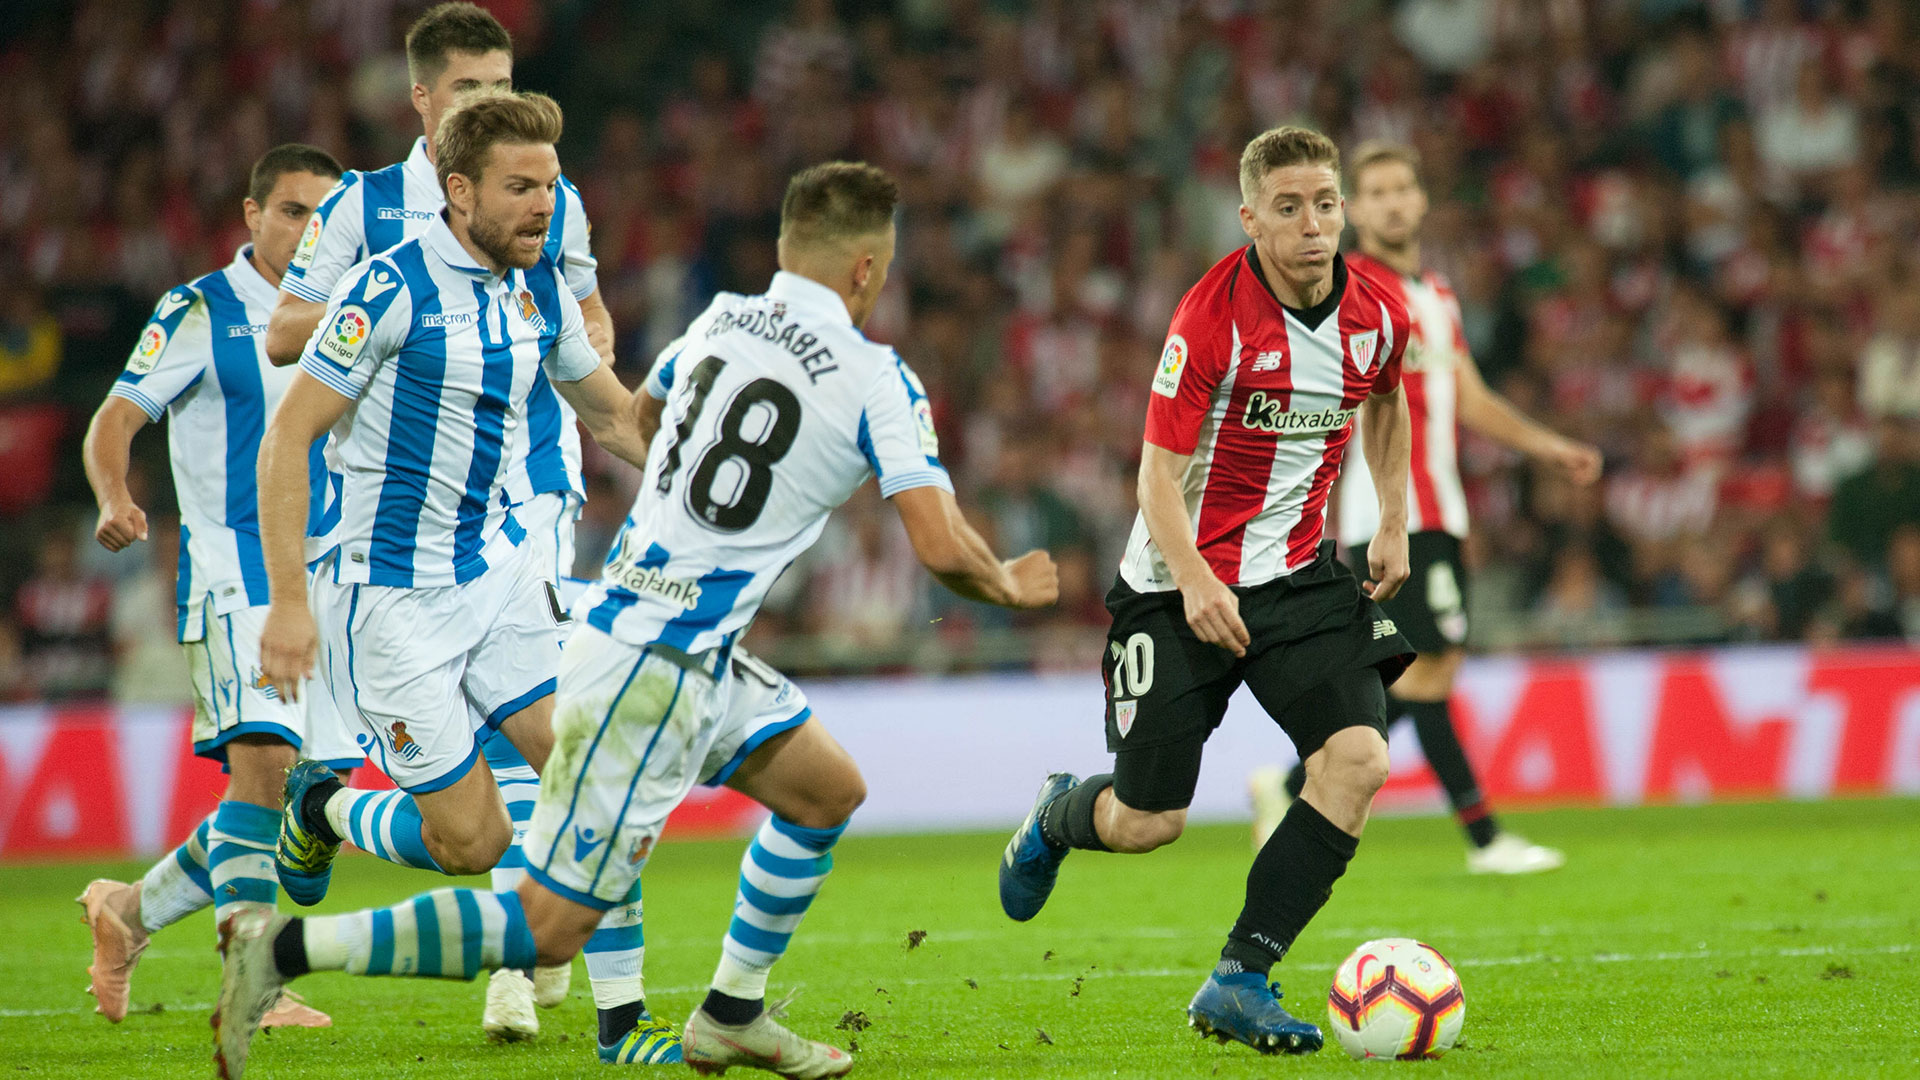 Real Sociedad-Athletic Club, fixture